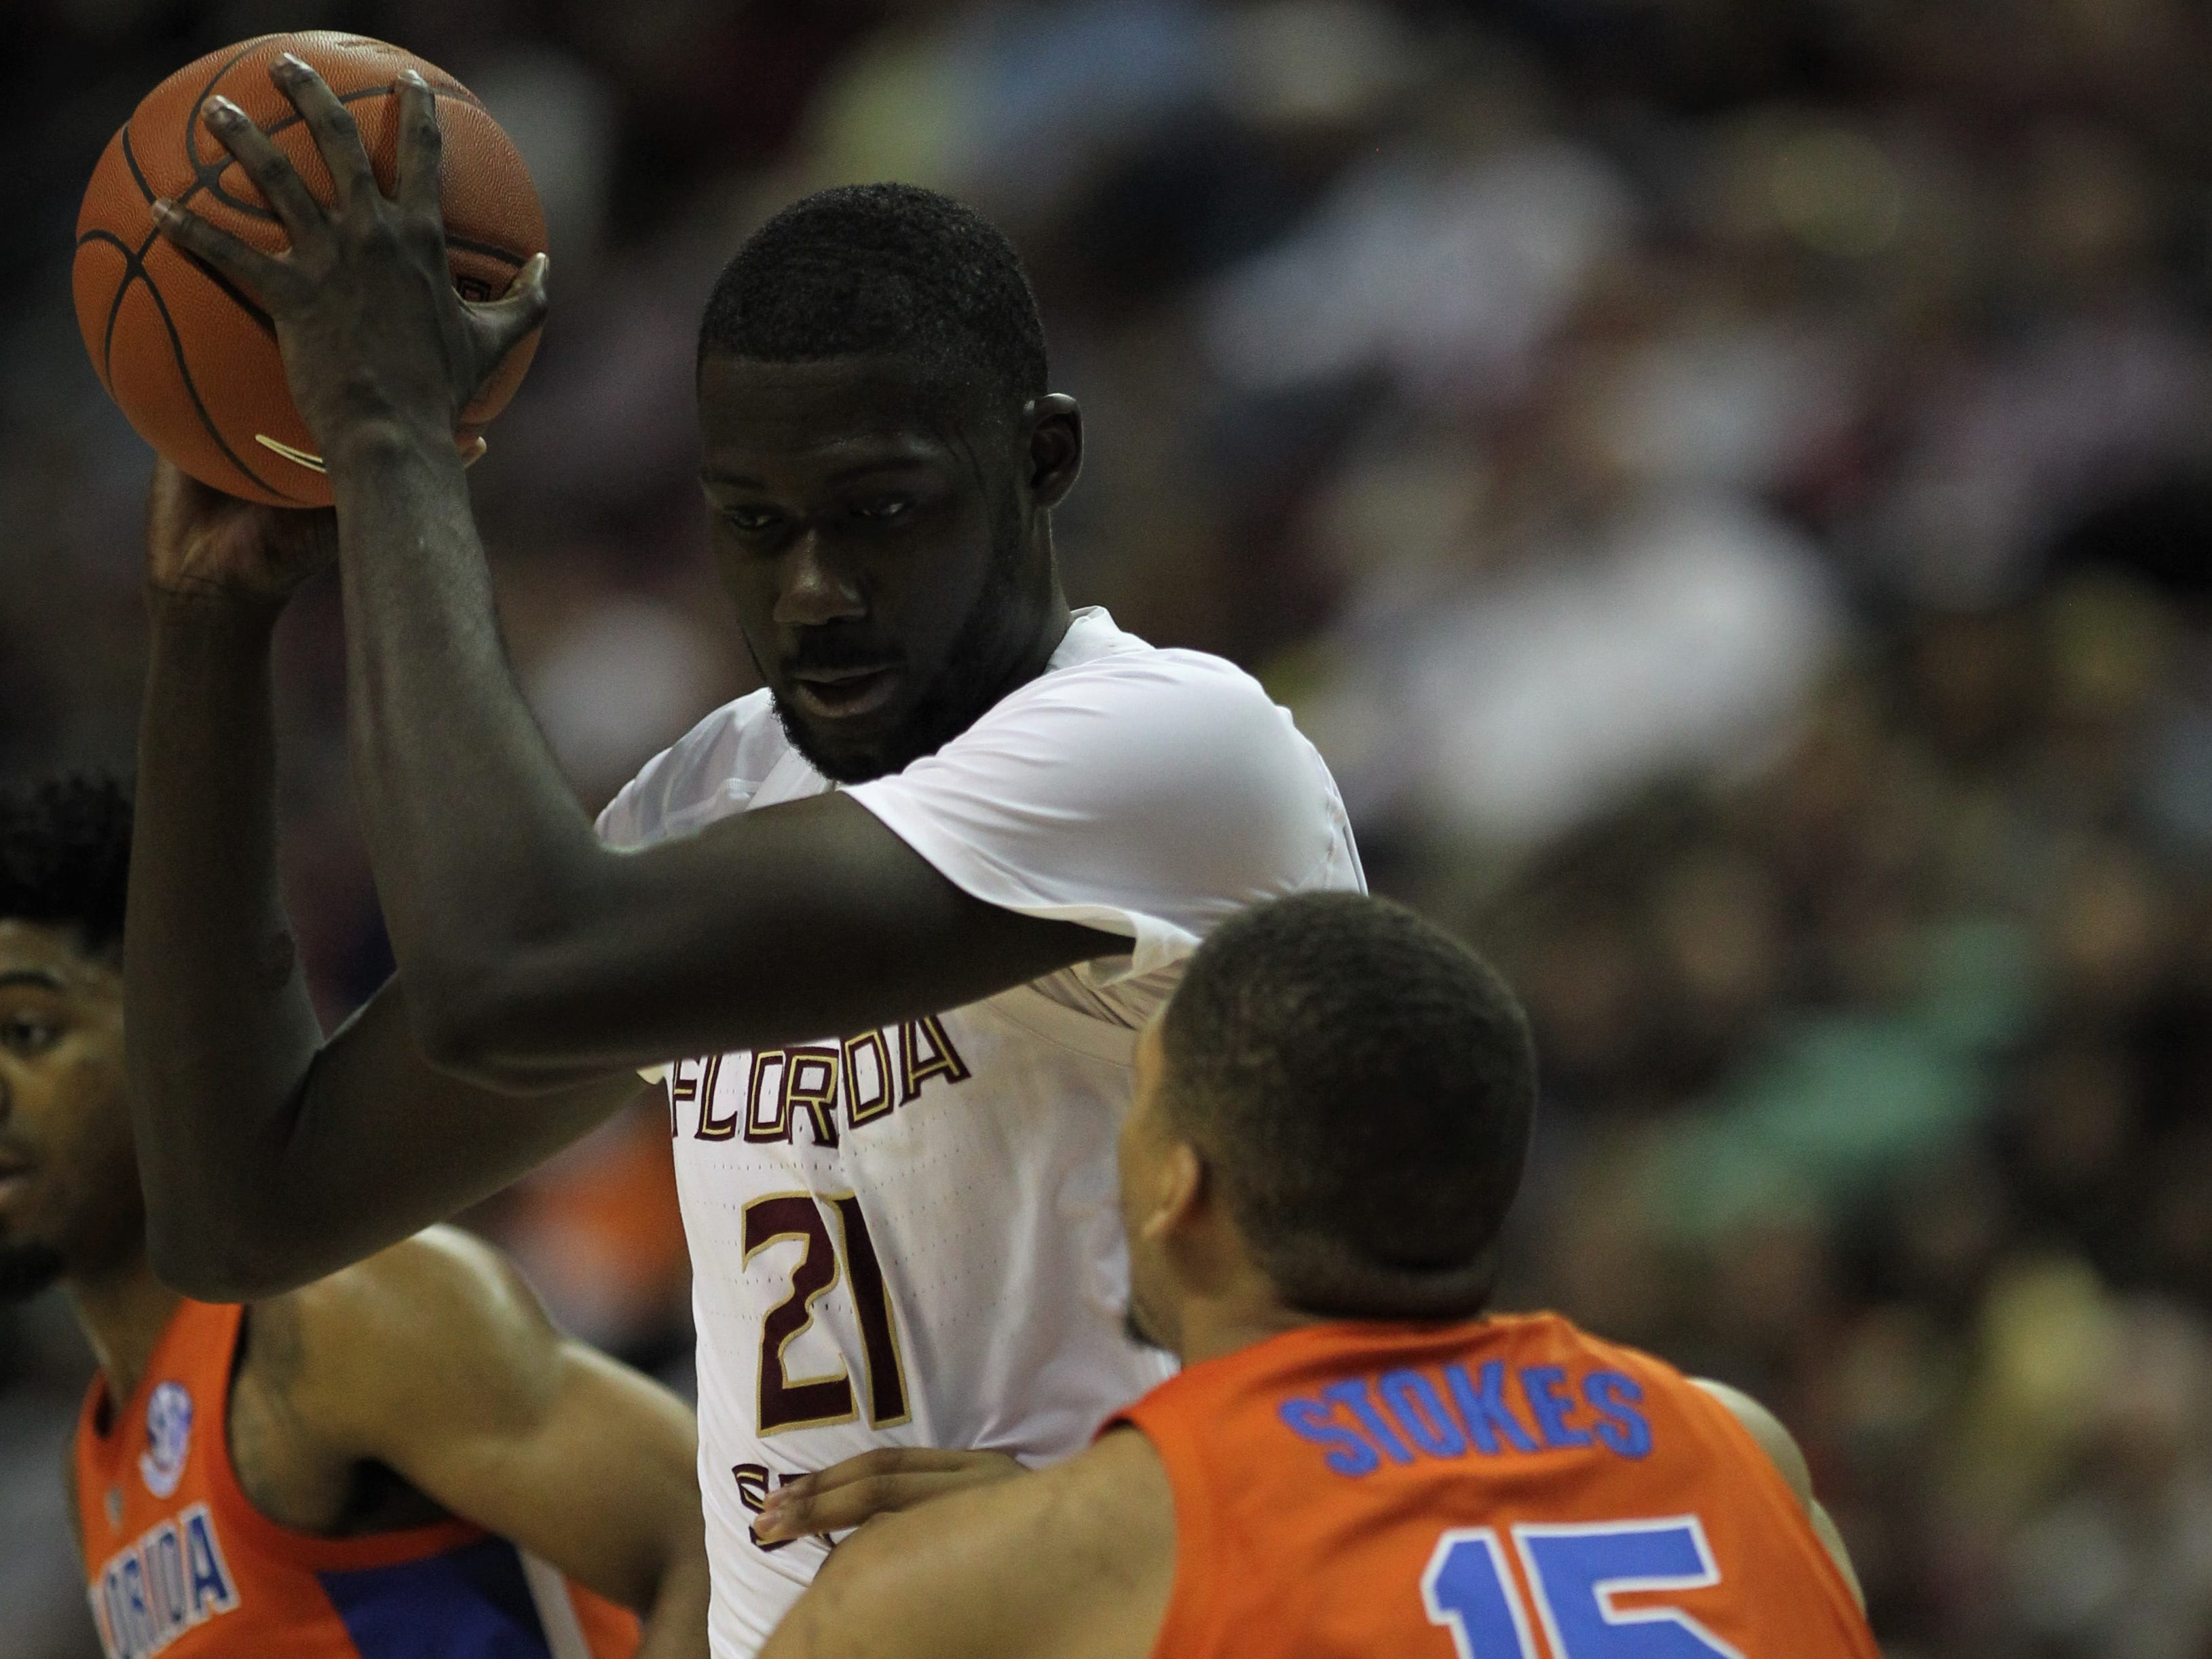 Florida State center Christ Koumadje prepares to work Florida's Isaiah Stokes during the Sunshine Showdown game Tuesday at the Tucker Civic Center.